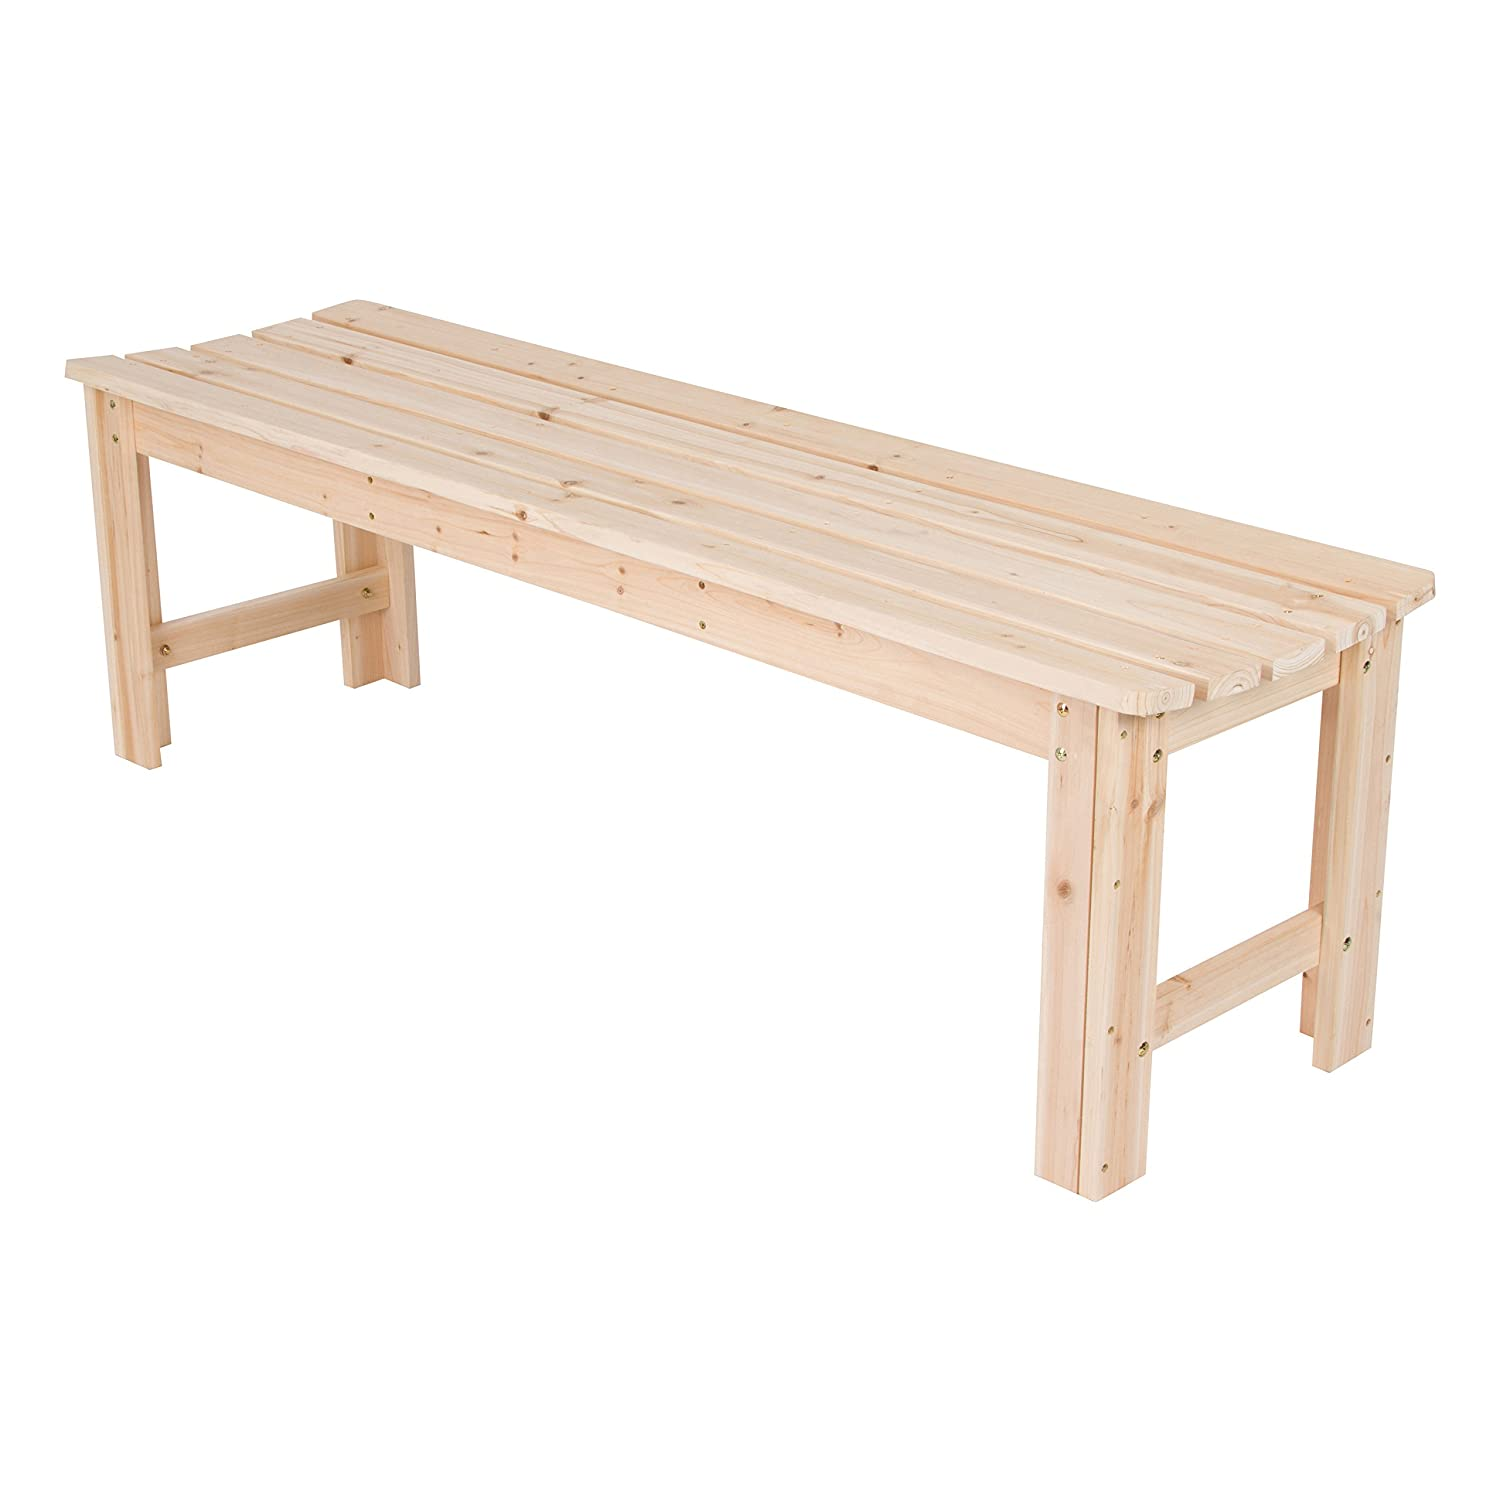 Shine Company Inc. 4205N Backless Garden Bench, 5 Ft, Natural